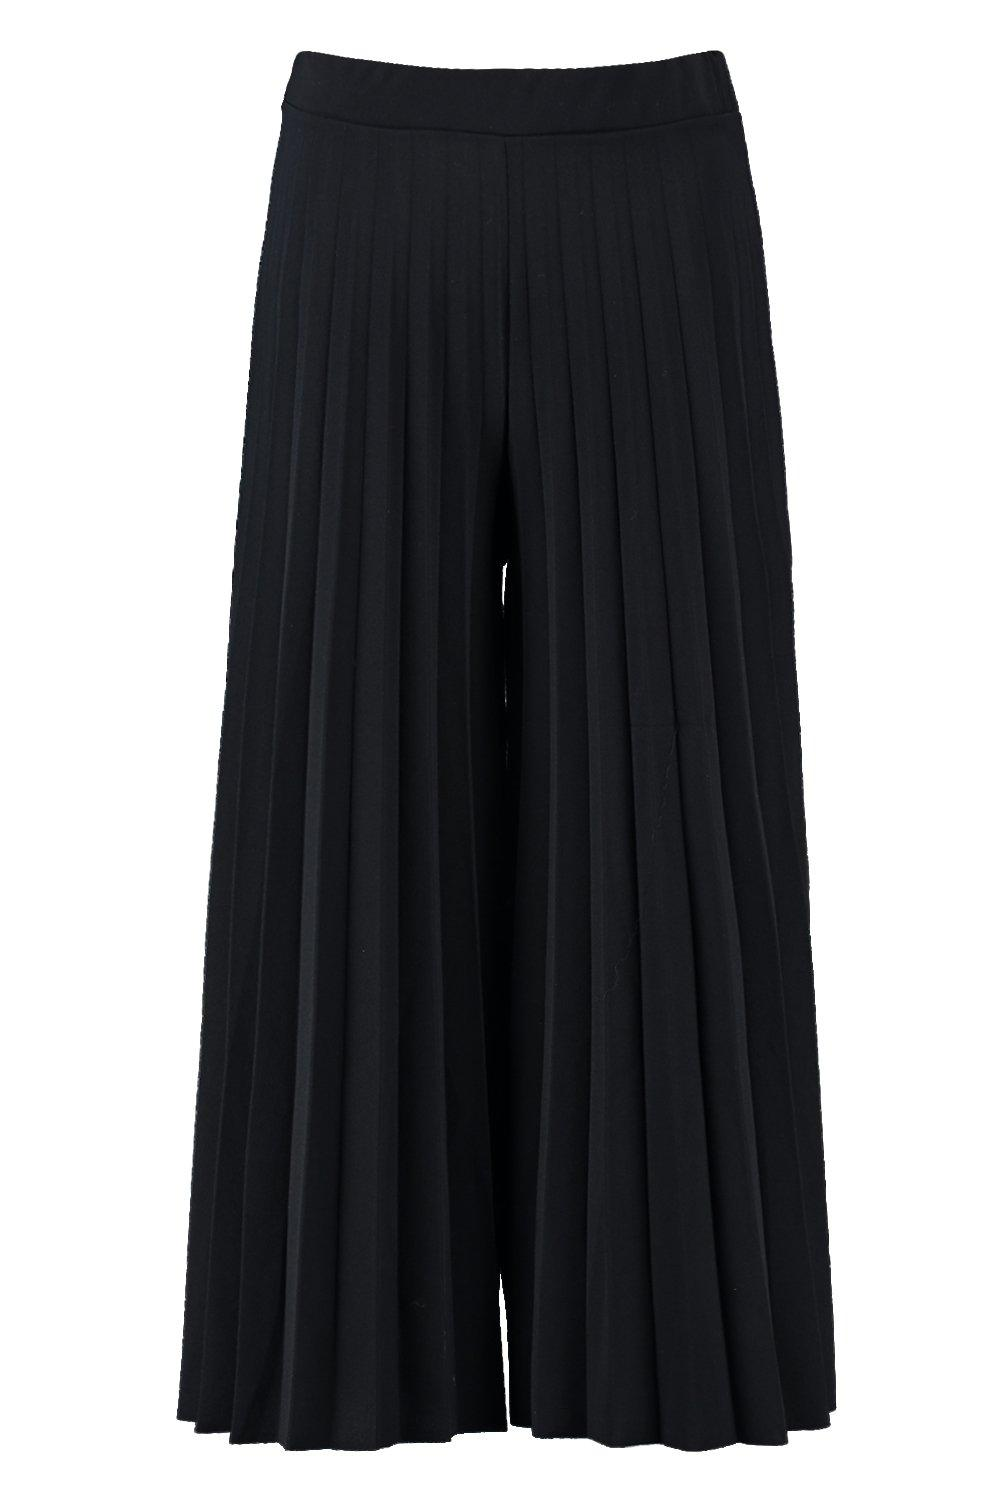 Trouser Culotte Pleated black Trouser black black Culotte Pleated Trouser Pleated Culotte q18zwT